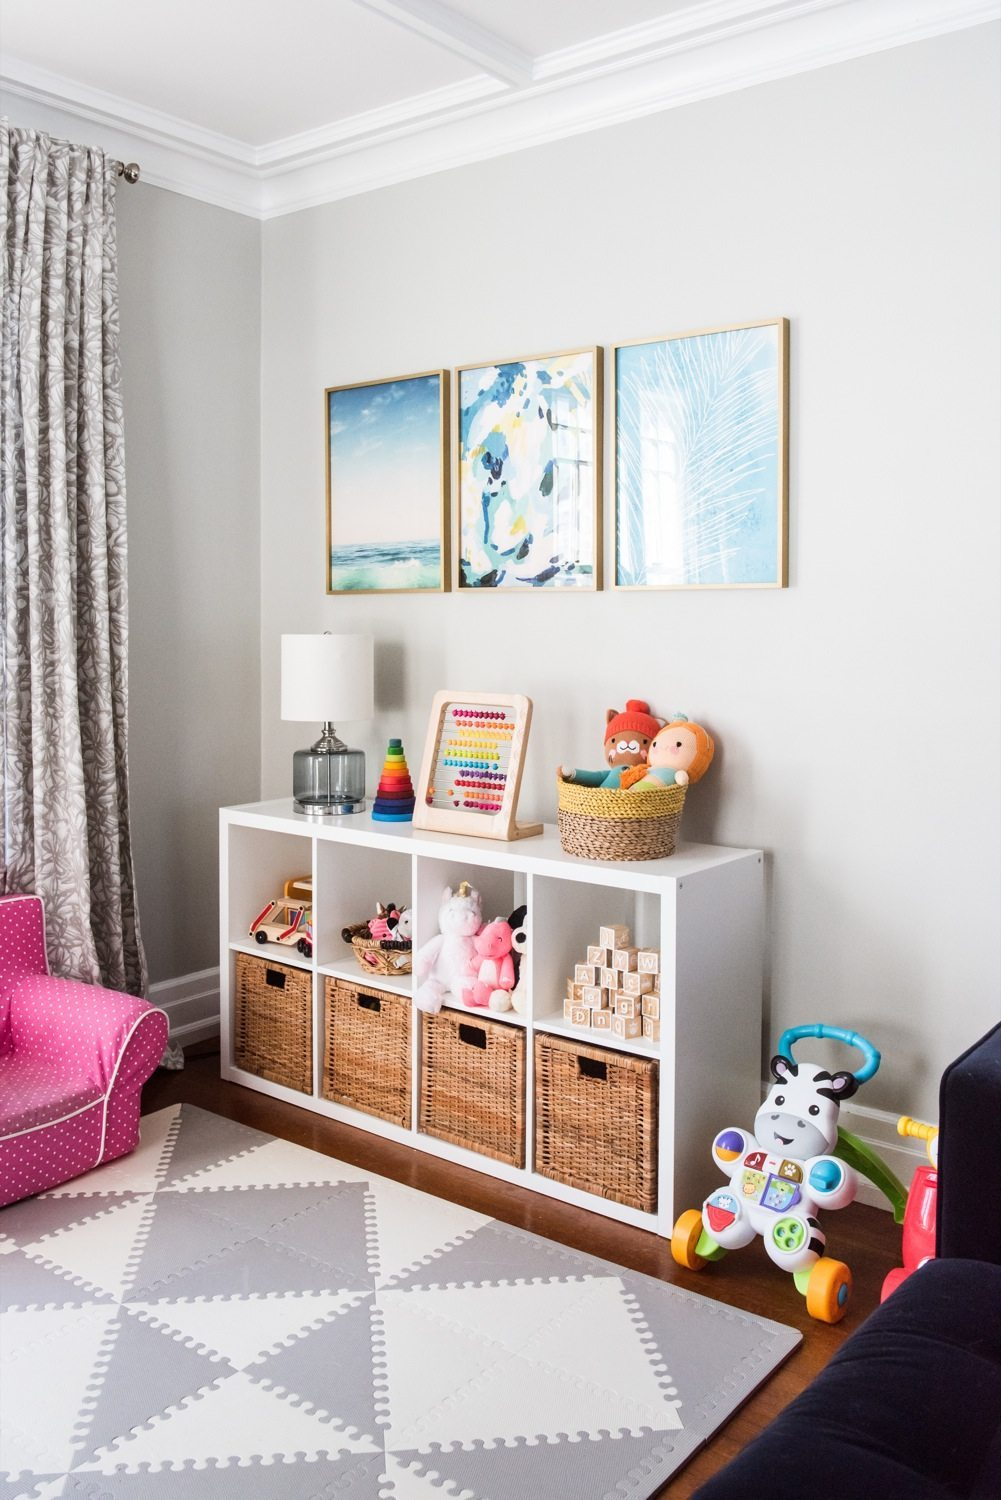 Emerson 39 s modern playroom tour the sweetest occasion for Playroom floor ideas